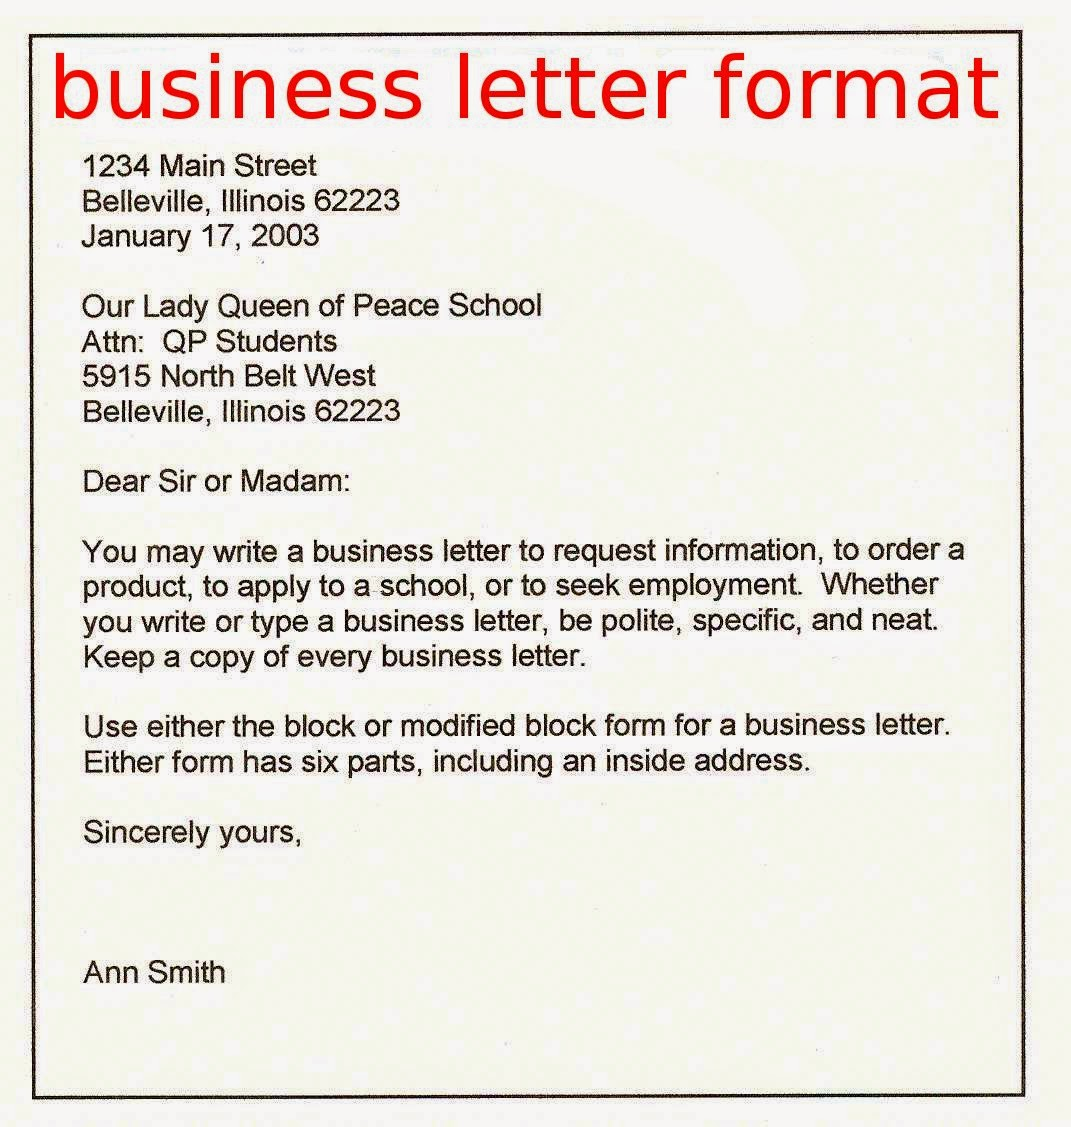 How a Business Memo is Different from a Business Letter